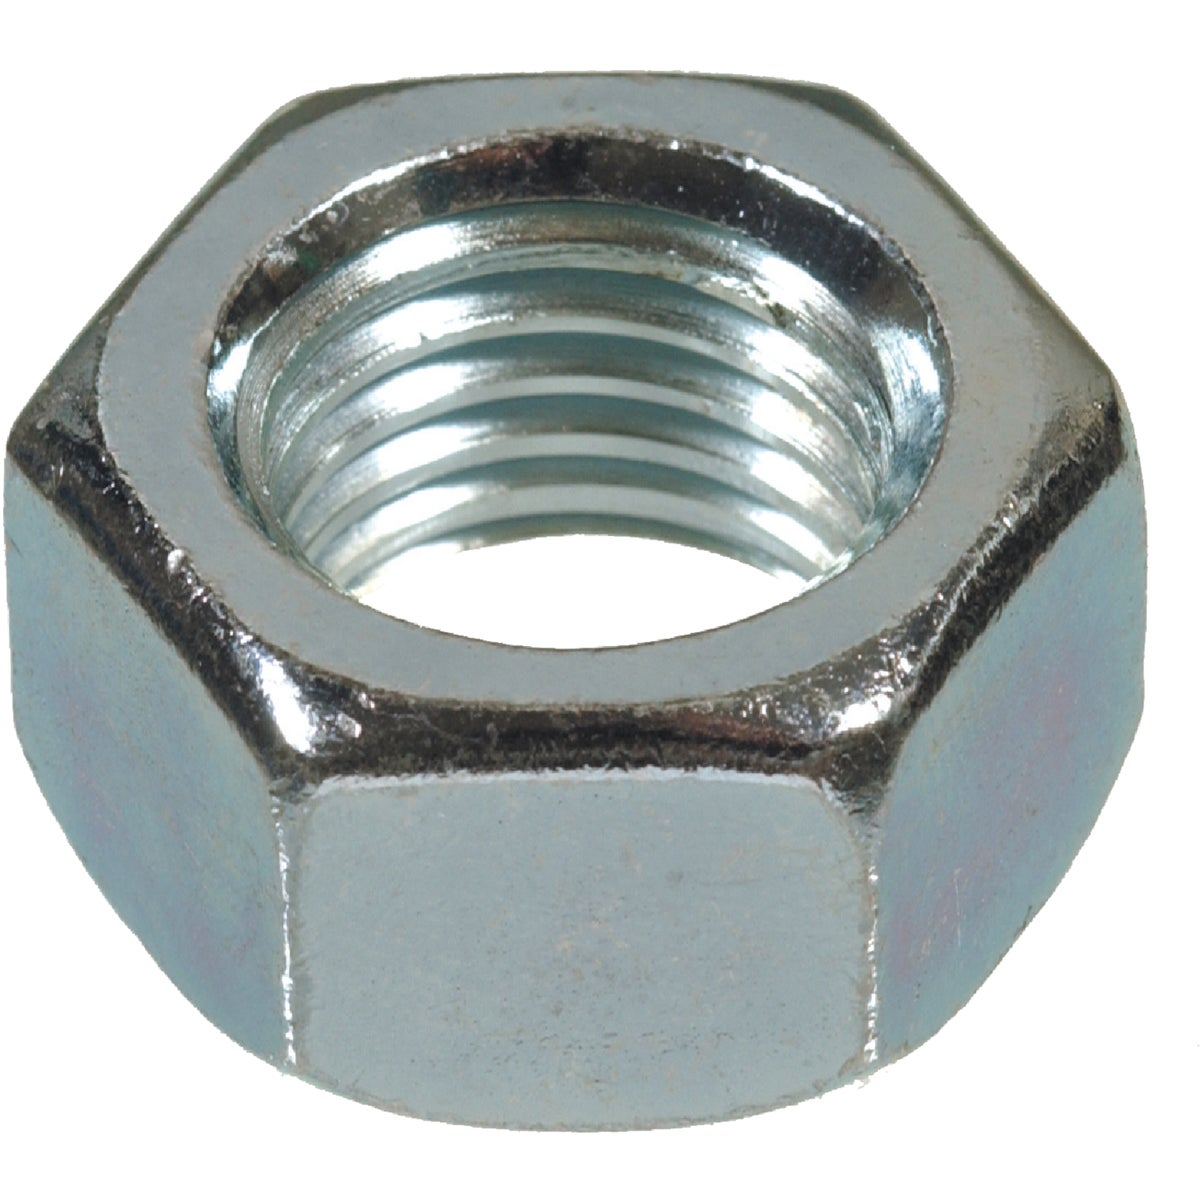 100PC 3/8-16 CRS HEX NUT - 160504 by Hillman Fastener